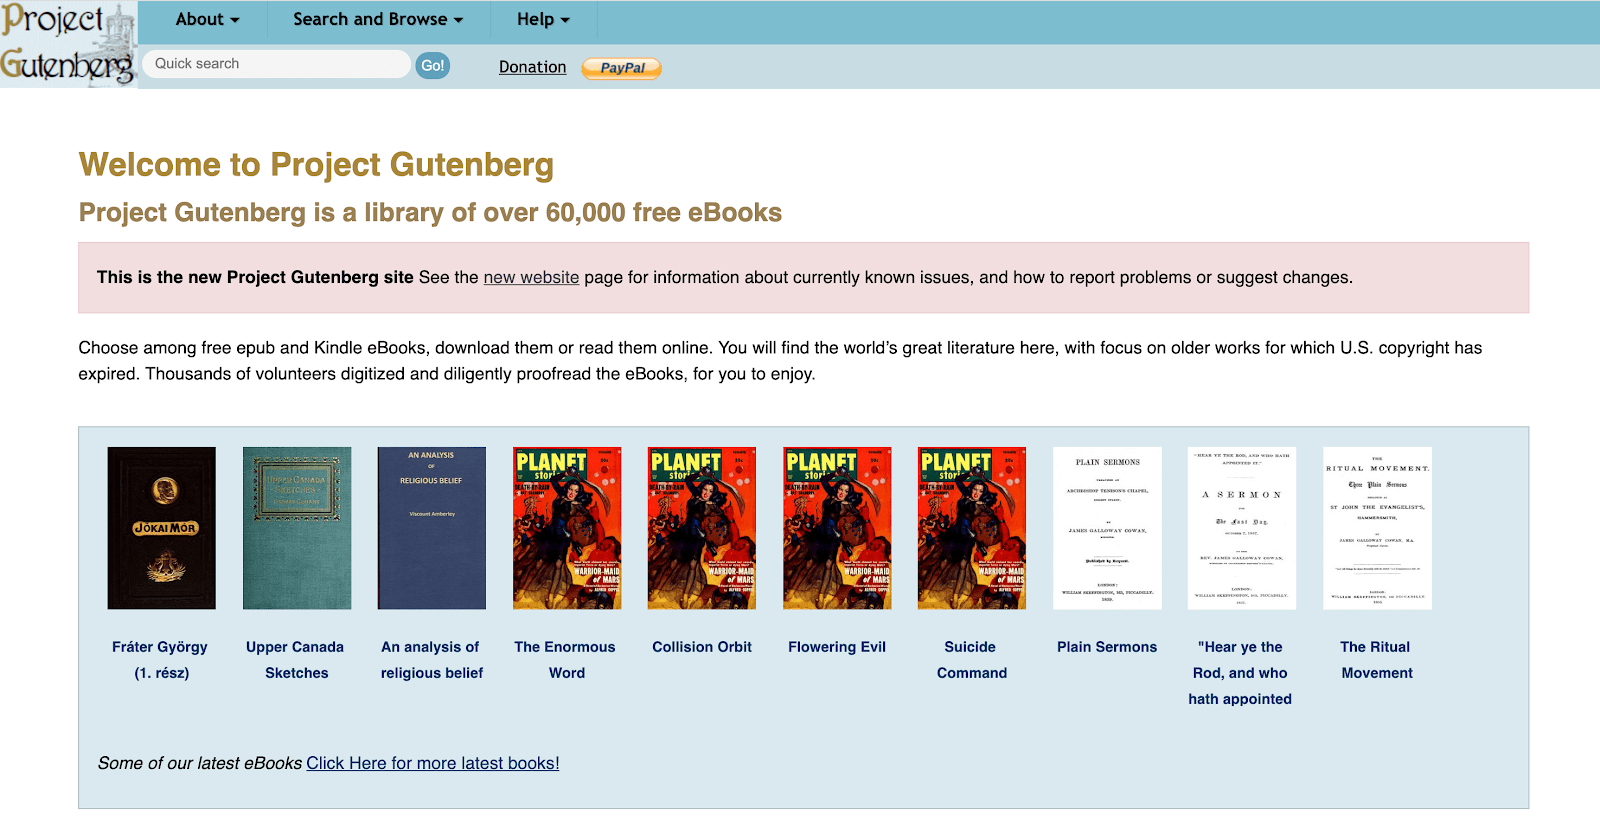 Project Gutenberg's home screen